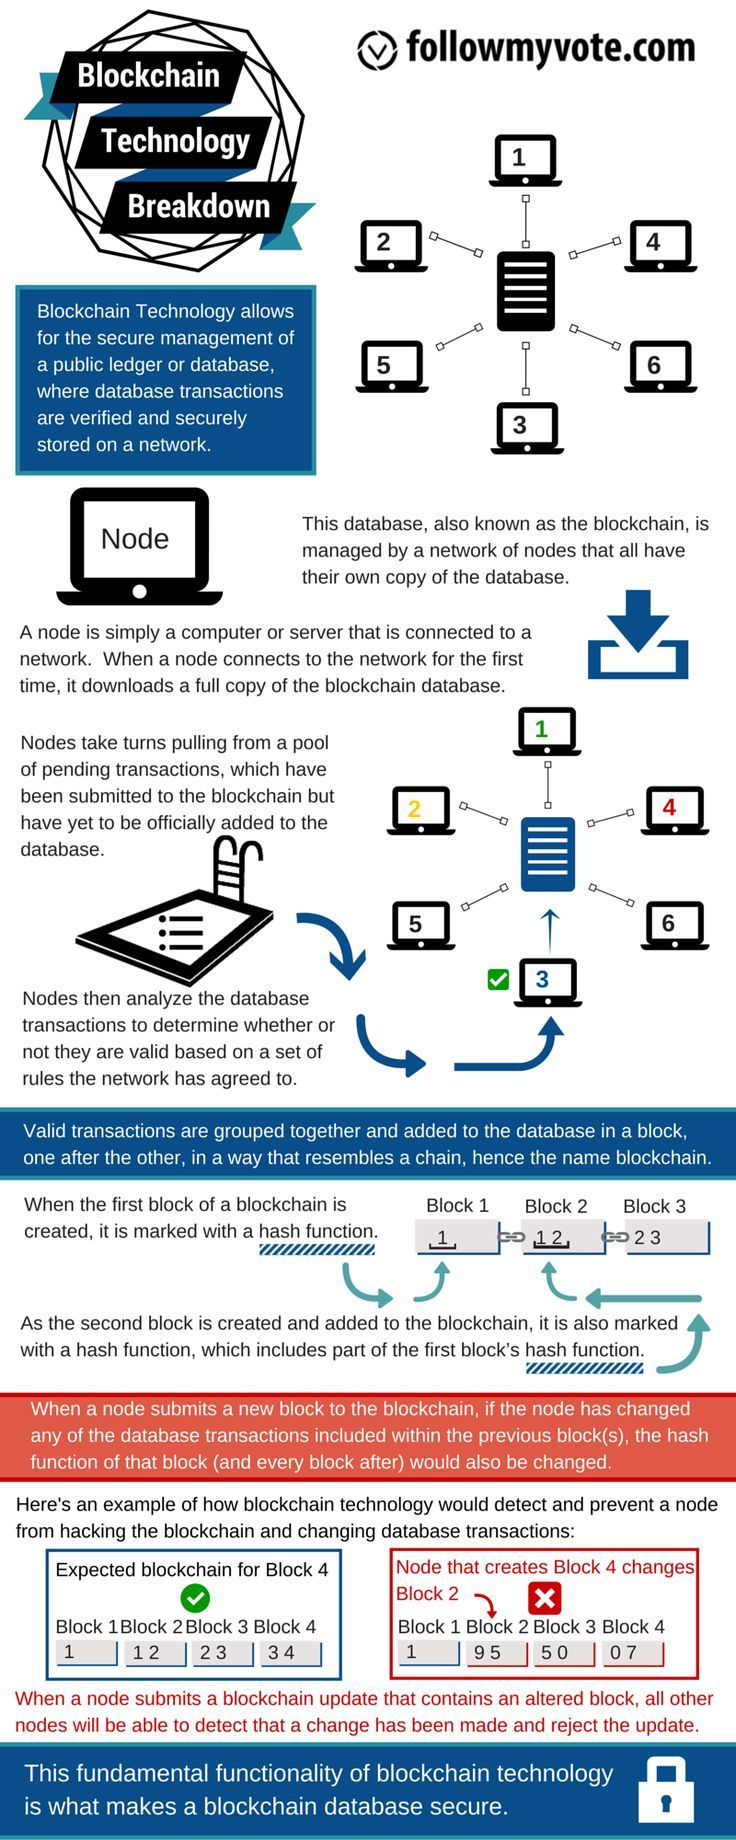 BlockchainTechnology Blockchain technology is the technological innovation behindBitcoin. It is a public ledger that holds and proves all network transactions. As blocks are added, a recording is added to the chain in both a chronological… #infographic #bitcoin #crypto #cryptocurrency #money #investing #makemoney #picture #cool #tech #geeky #technology #blockchain #future #reading #books #read #goodbook #goodbooks